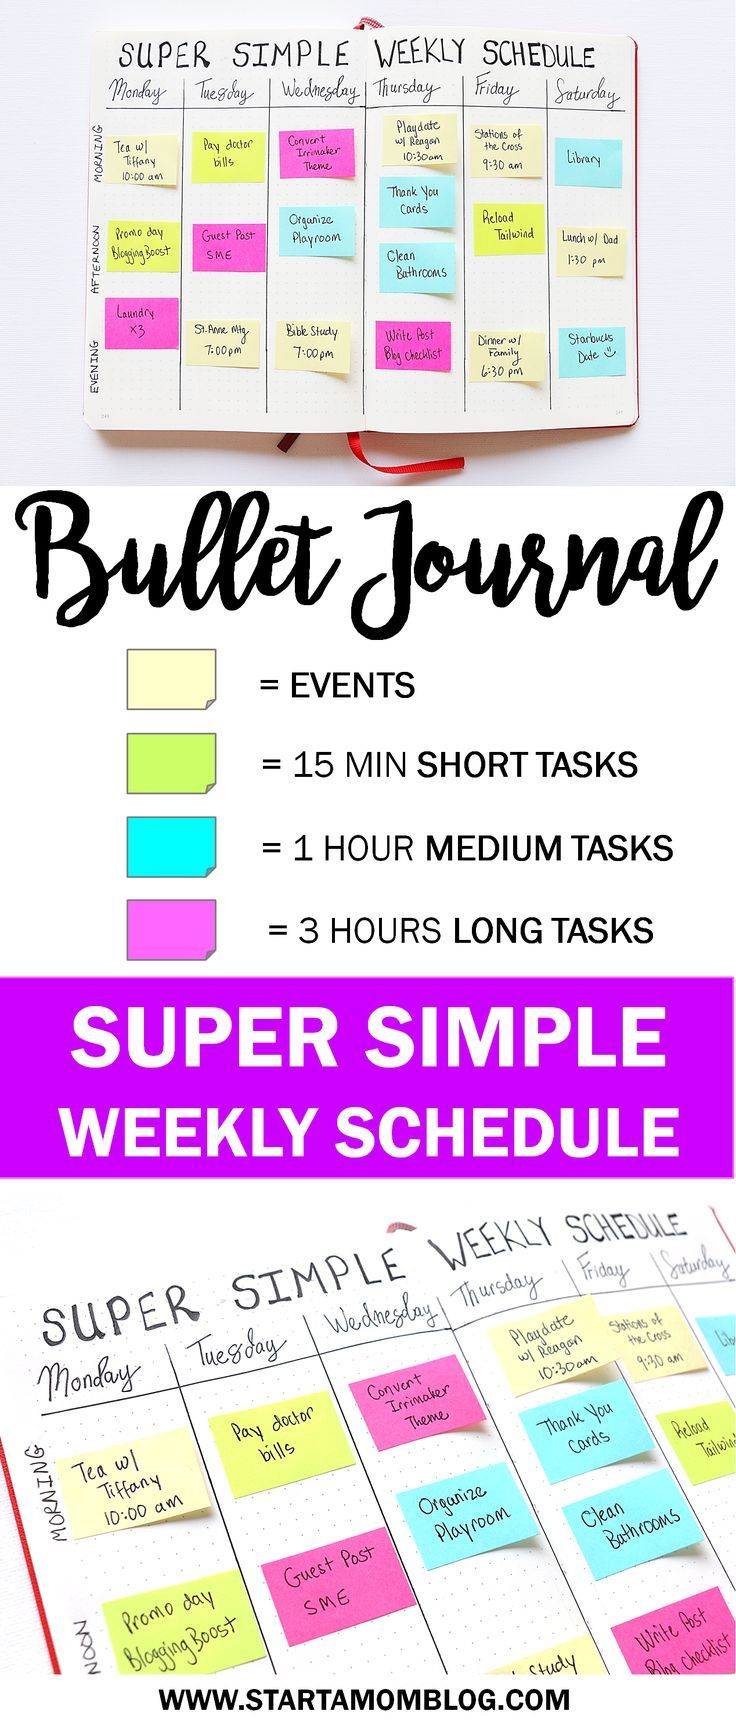 Super simple weekly layout for your bullet journal! This can be reused over and over! Easy, quick and simple way to schedule your week in your bullet journal! http://www.startamomblog.com